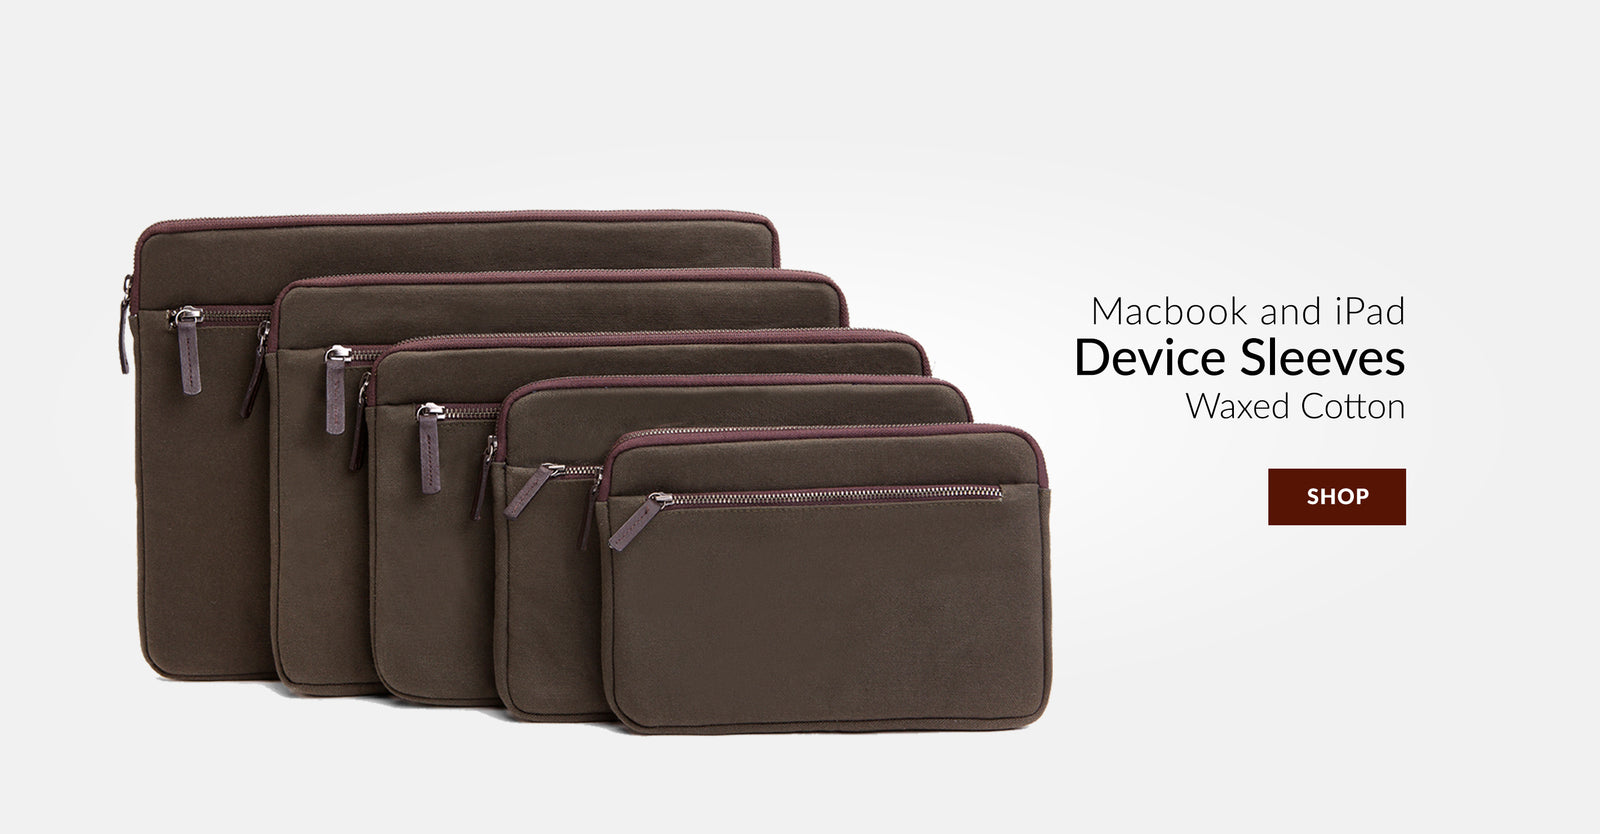 Laptop Sleeves, Macbook Sleeve,  Macbook Case